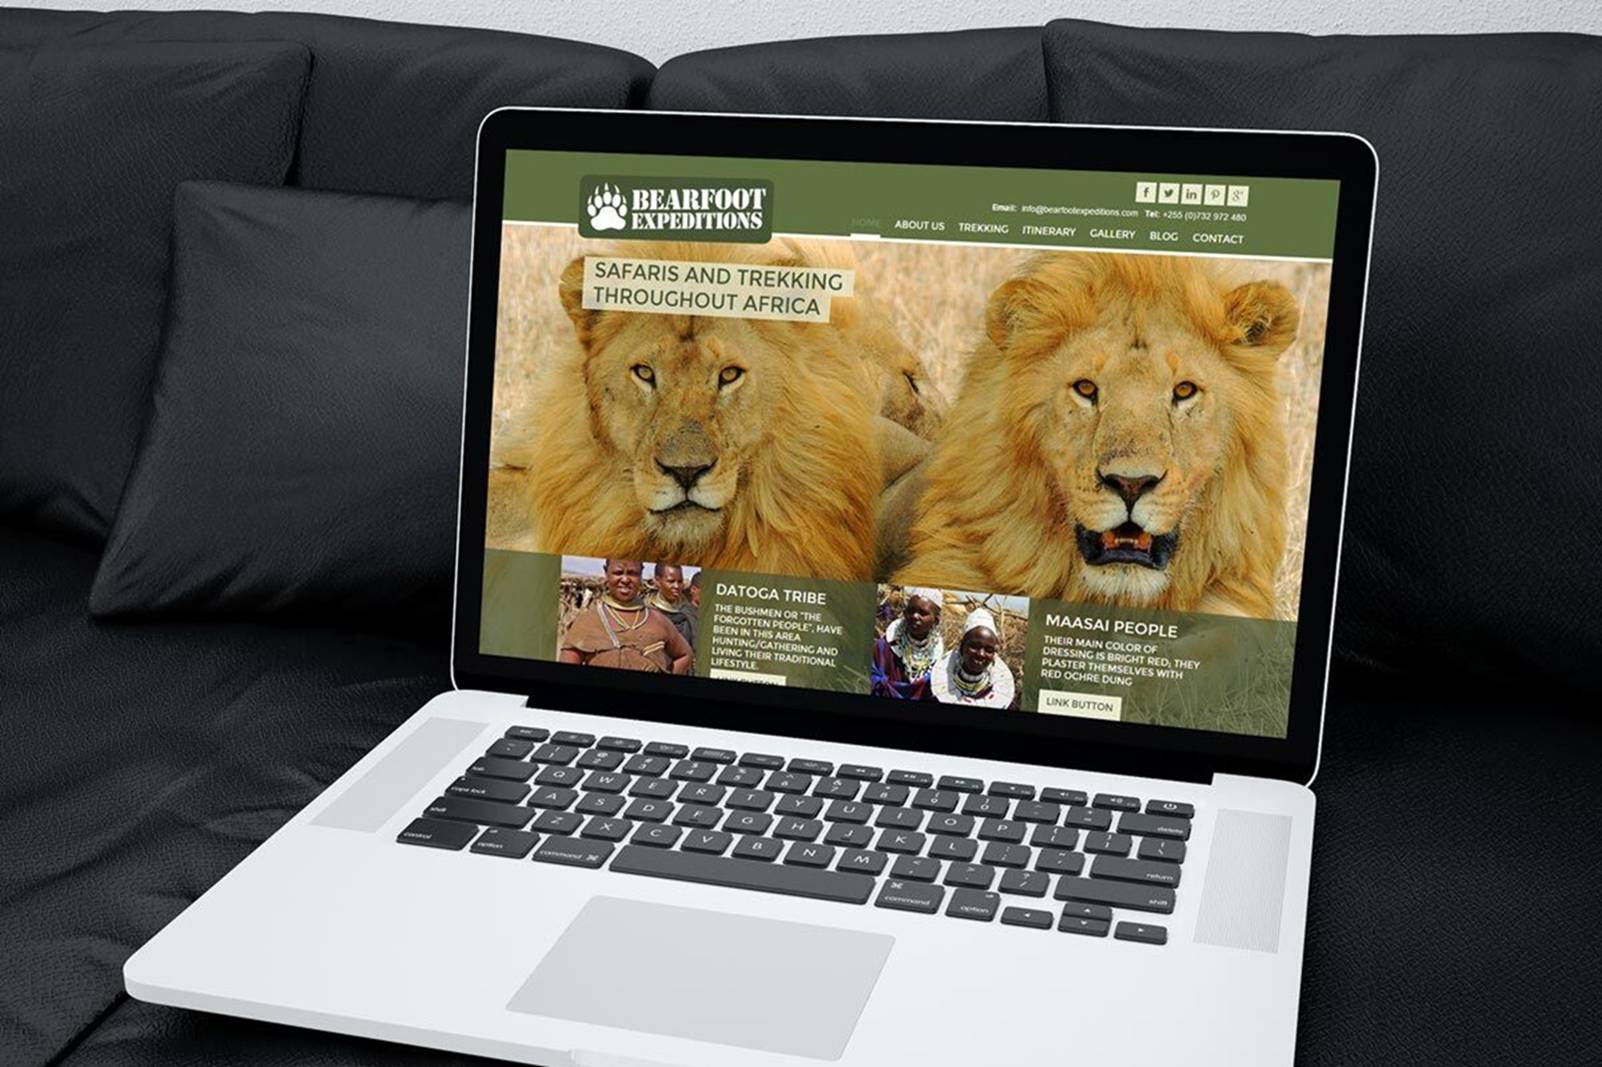 lap top on black sofa, large image of lions